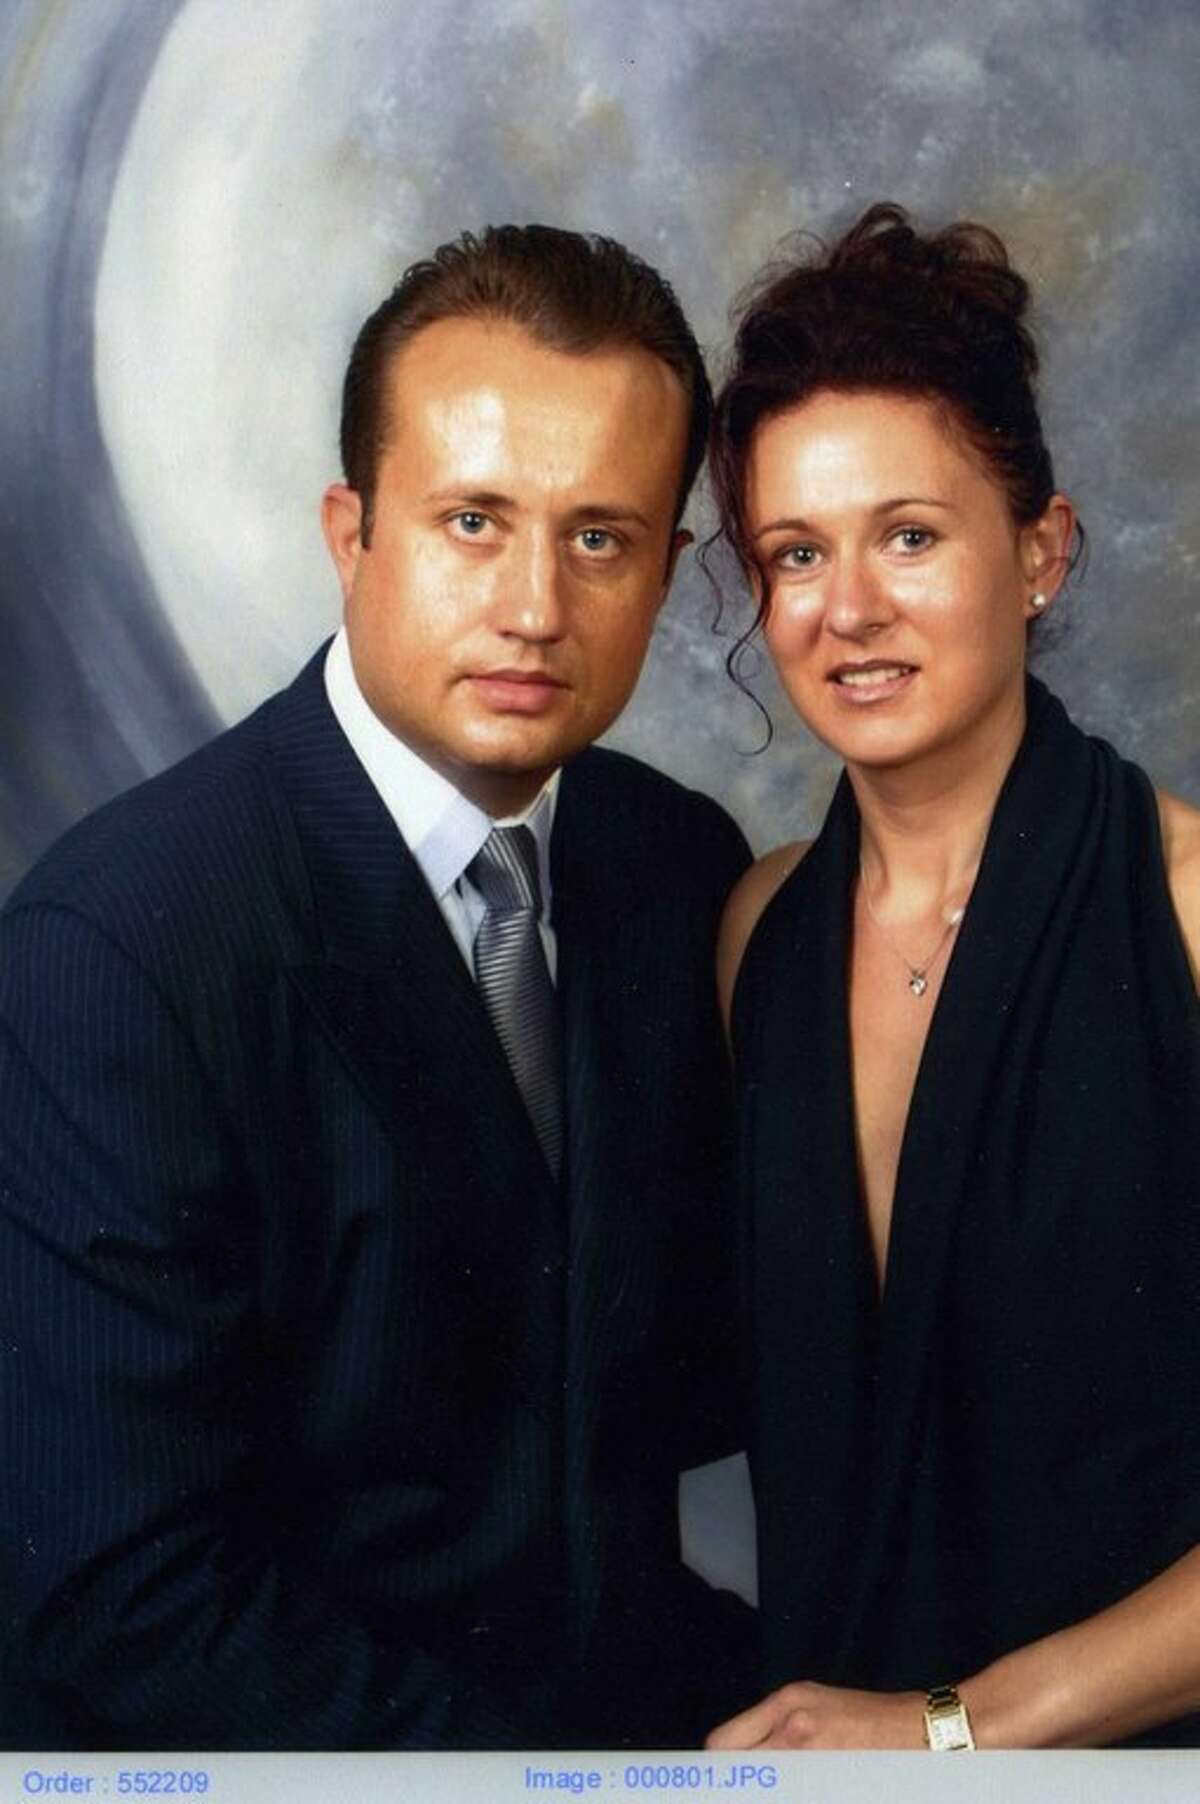 Natalia Wolf and her husband, Victor, are accused of being involved in a massive real estate fraud scheme. The couple is accused of issuing fraudulent deeds and other documents to their investors and buyers in Florida. The FBI reports at least 100 known victims of the scheme have lost in excess of $20 million. The pair are charged with conspiracy to commit mail fraud and wire fraud. Federal arrest warrants for the pair were issued on Jan. 18, 2011.Image source: FBI